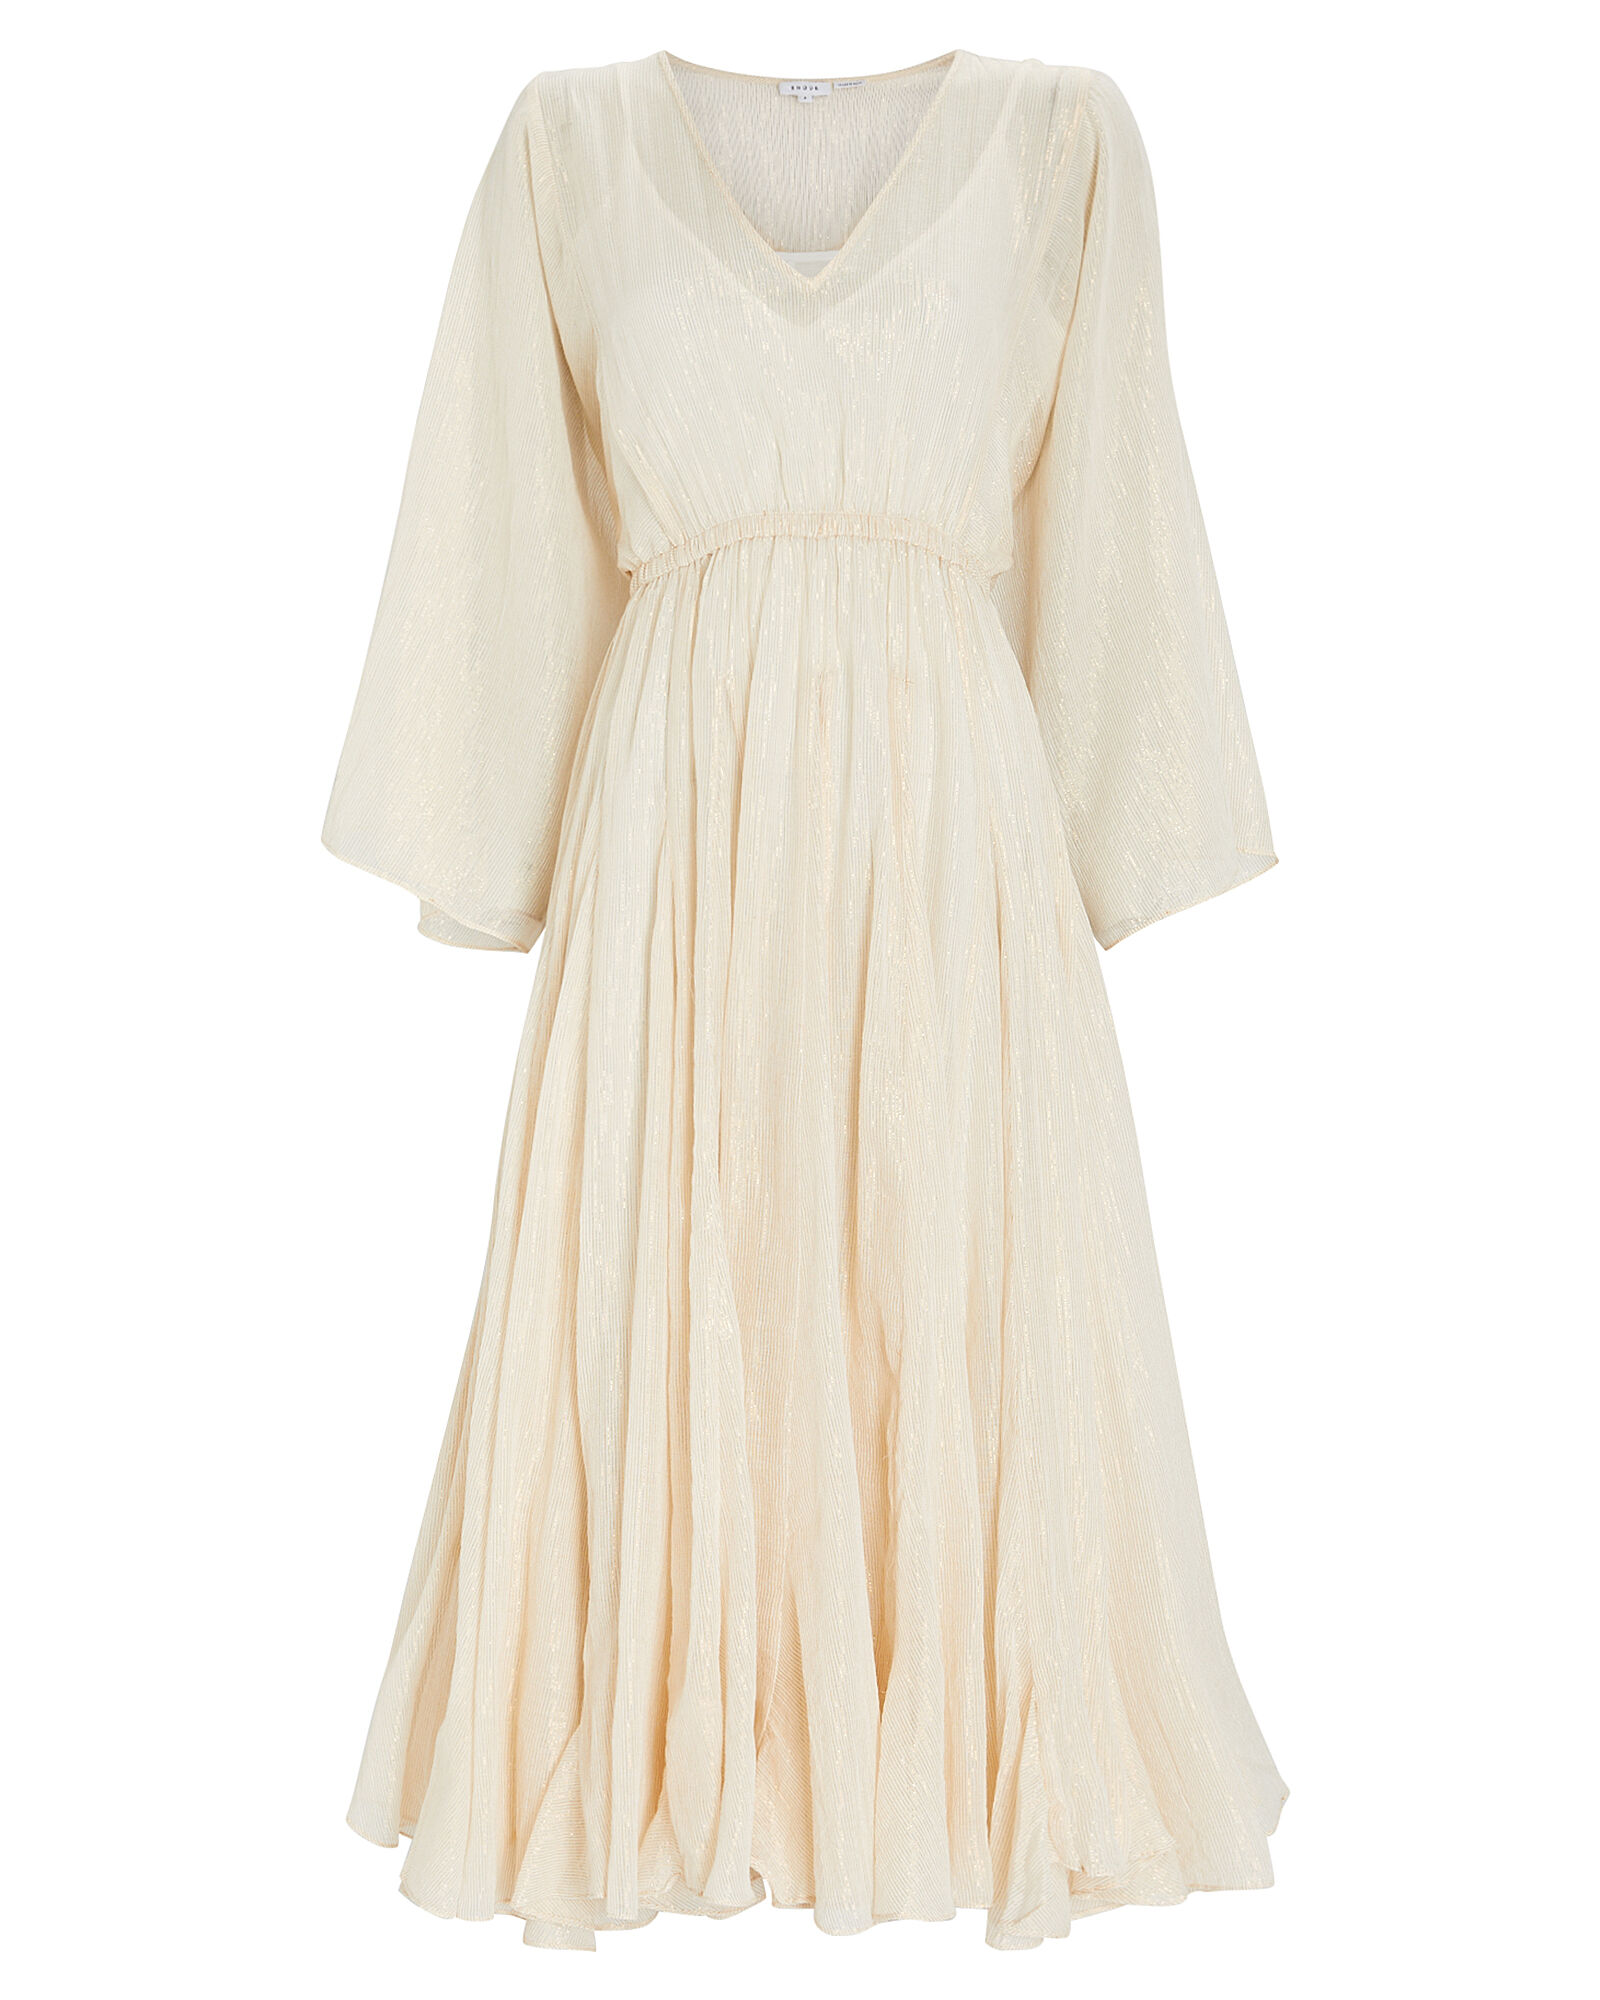 Emily Lurex Striped Cotton Dress, IVORY, hi-res